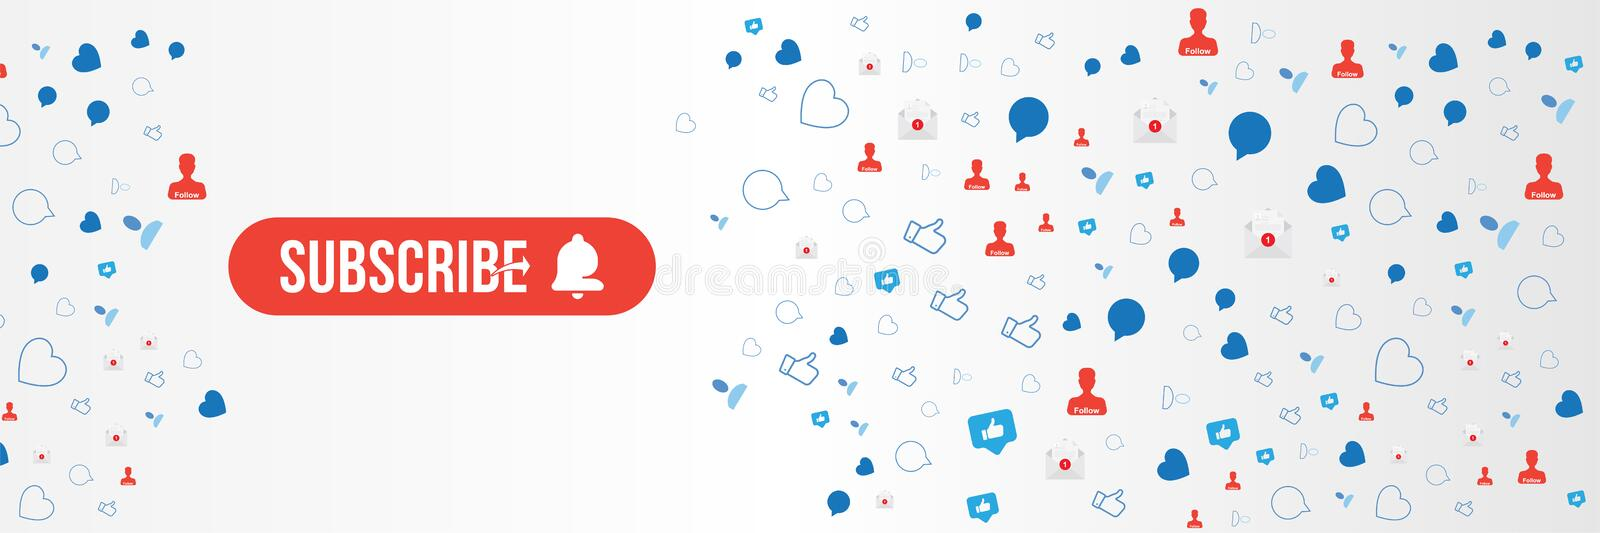 Subscribe Banner with button and bell icon. Red button for channel and video blog in social media on background with Icons of. Subscribe button with bell icon vector illustration